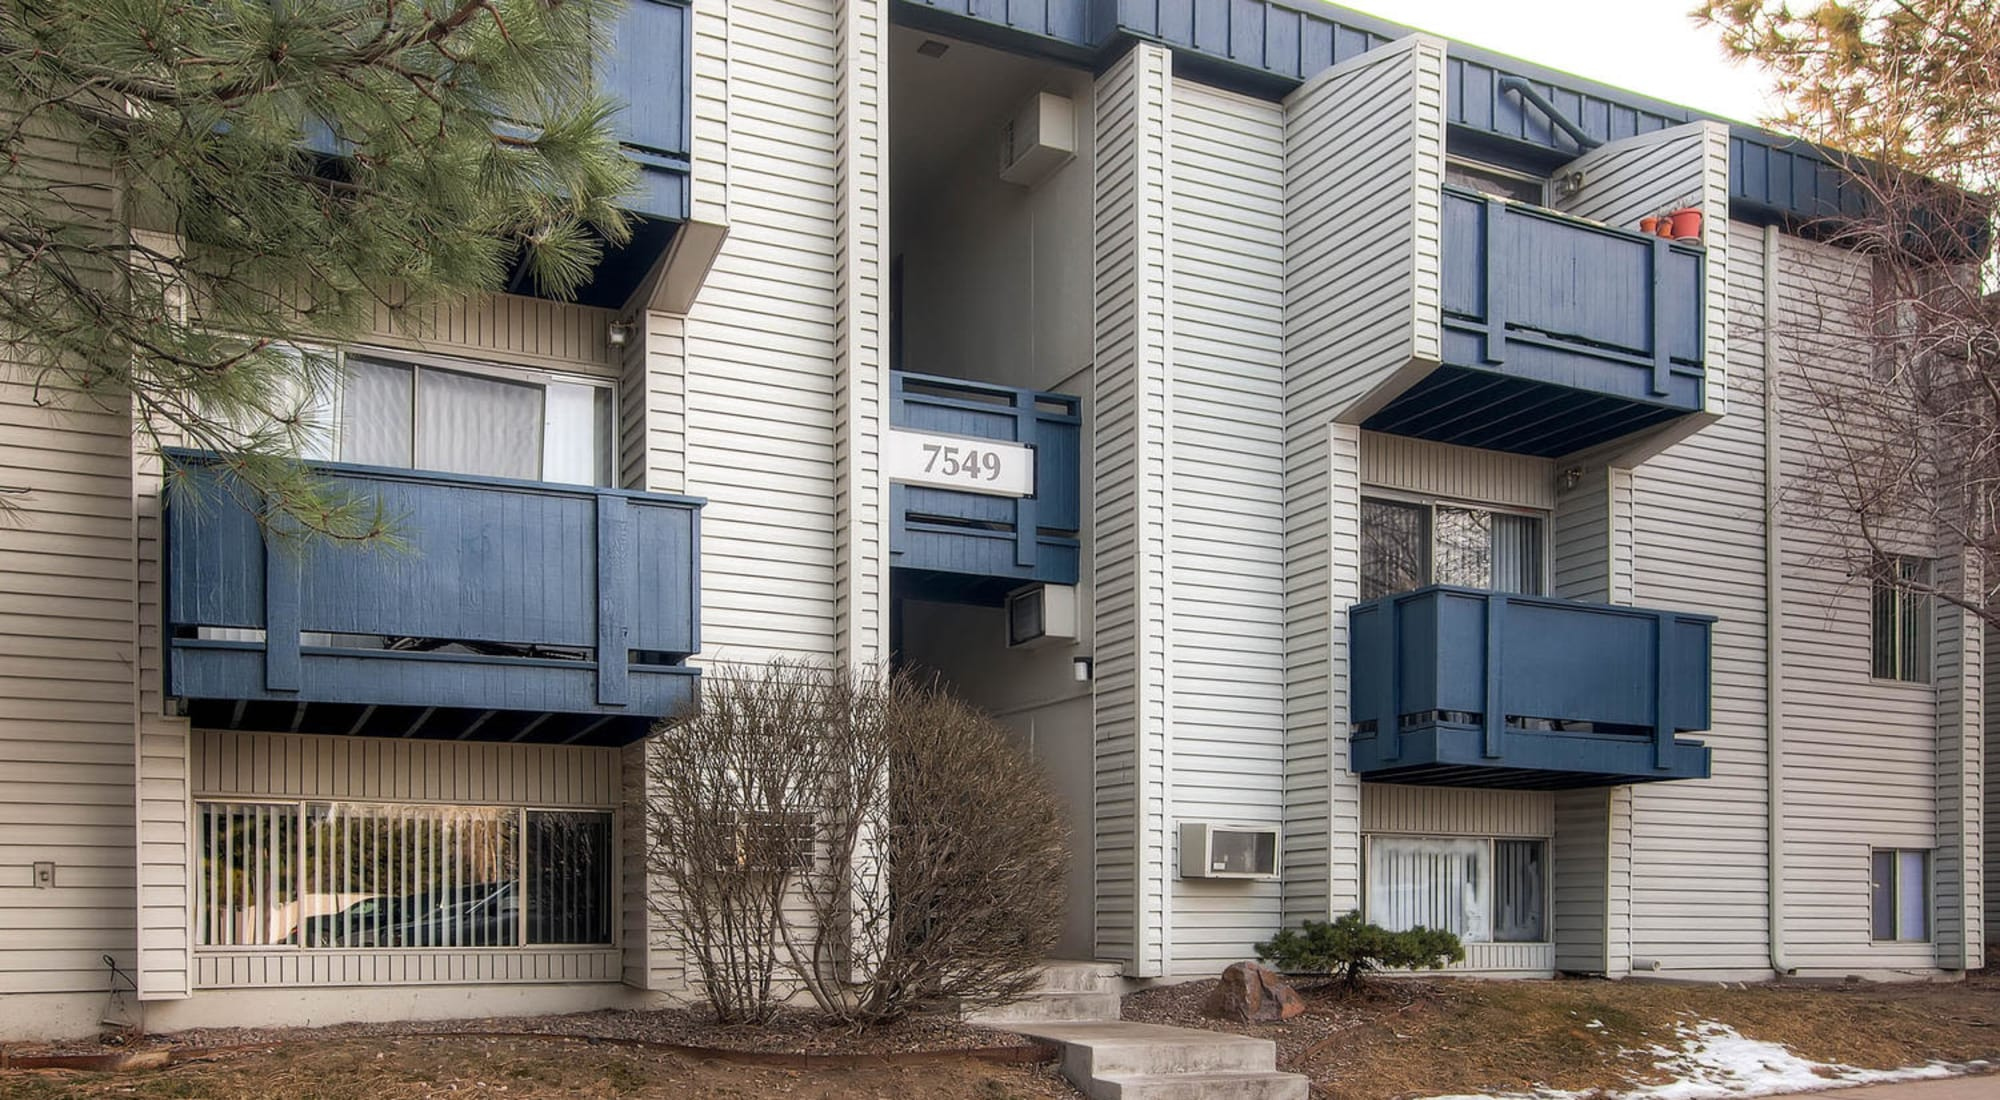 Apply to live at Arvada Green Apartment Homes in Arvada, Colorado